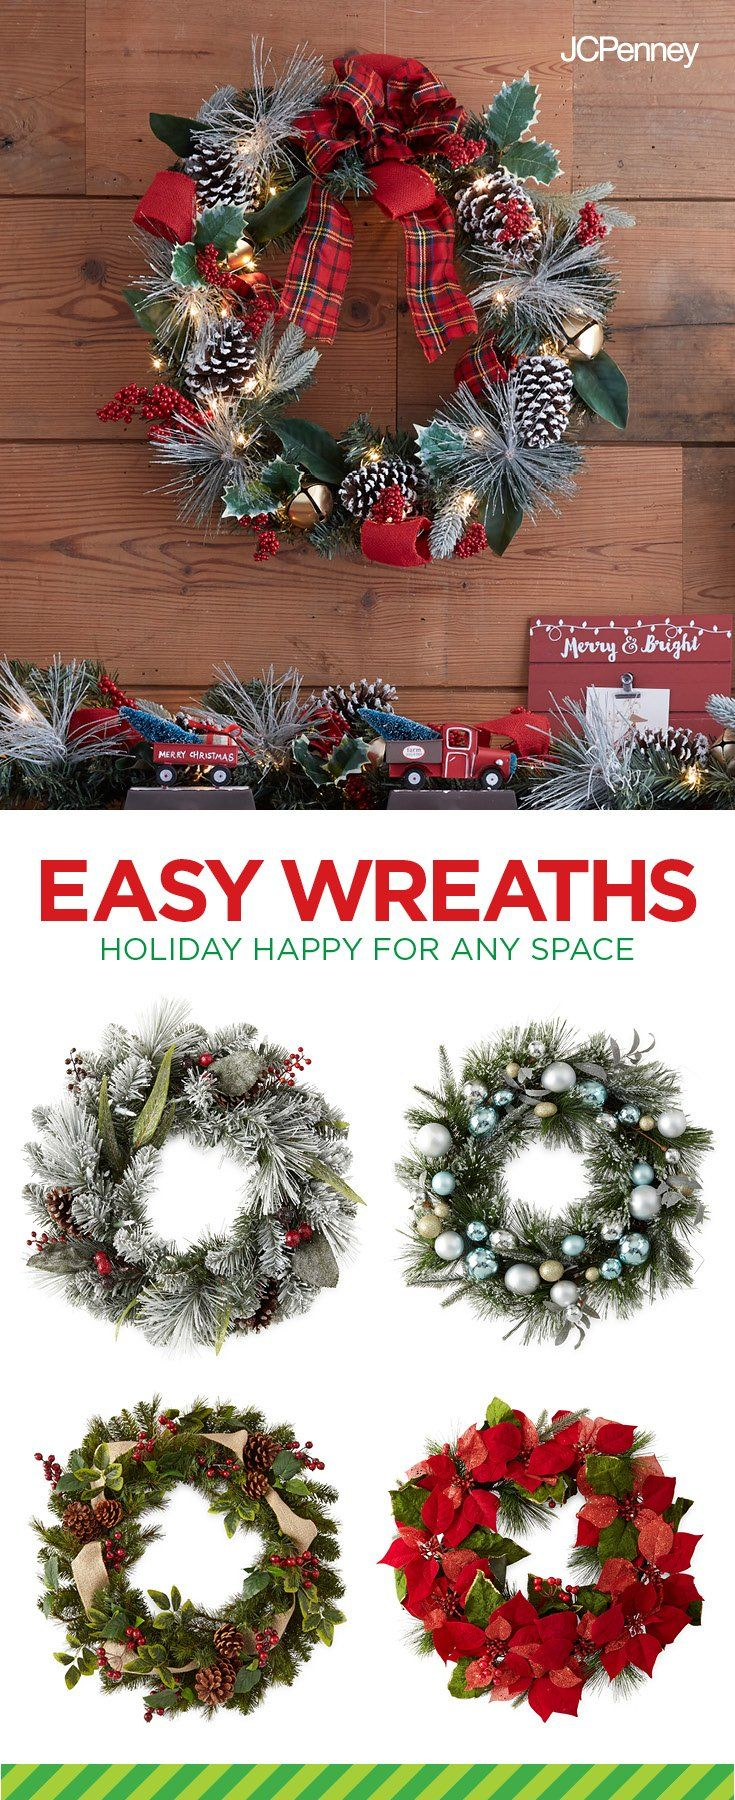 garlands wreaths holiday decor for the home jcpenney - Jcpenney Christmas Decorations